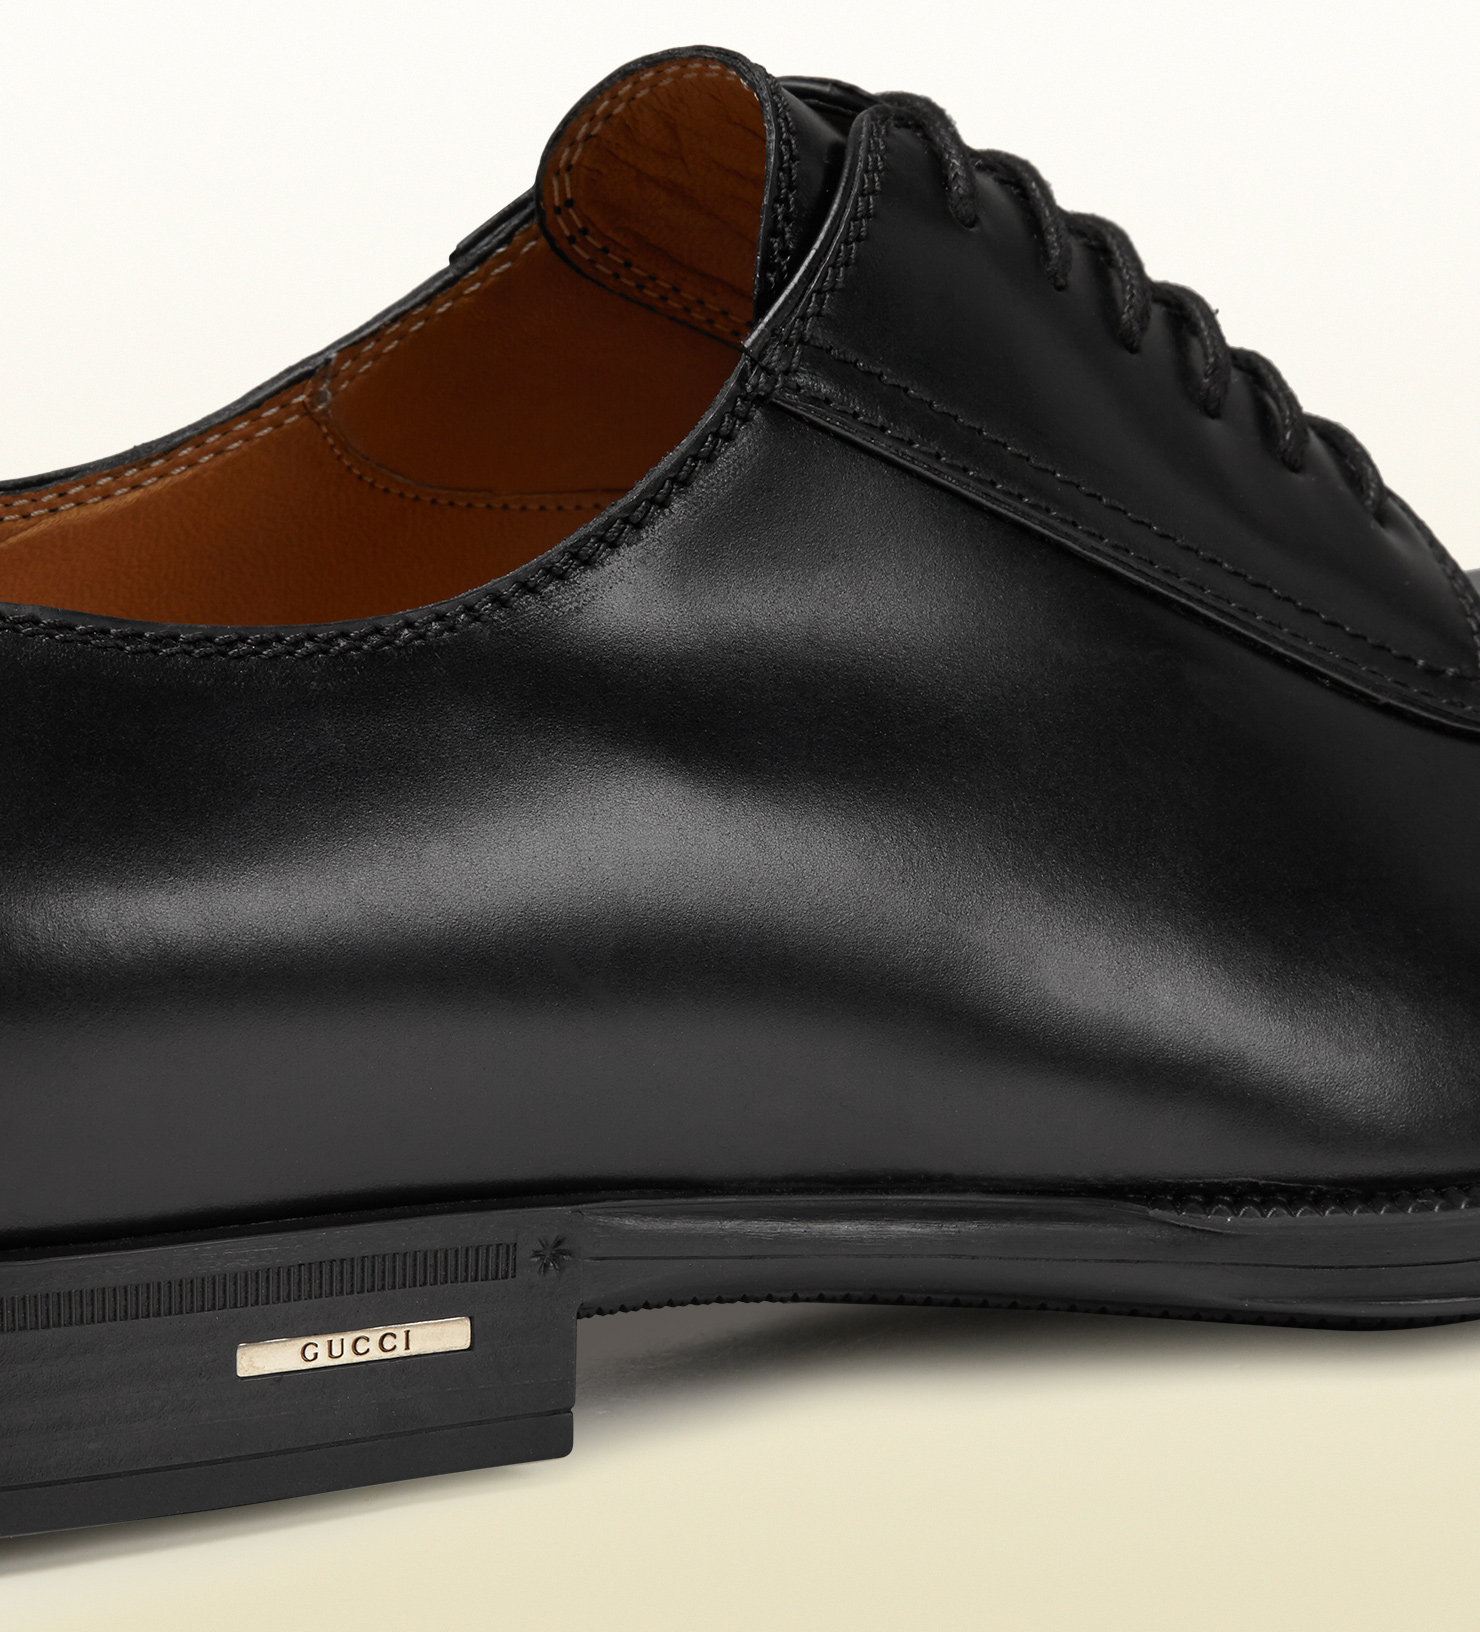 gucci brushed leather lace up shoe in black for lyst